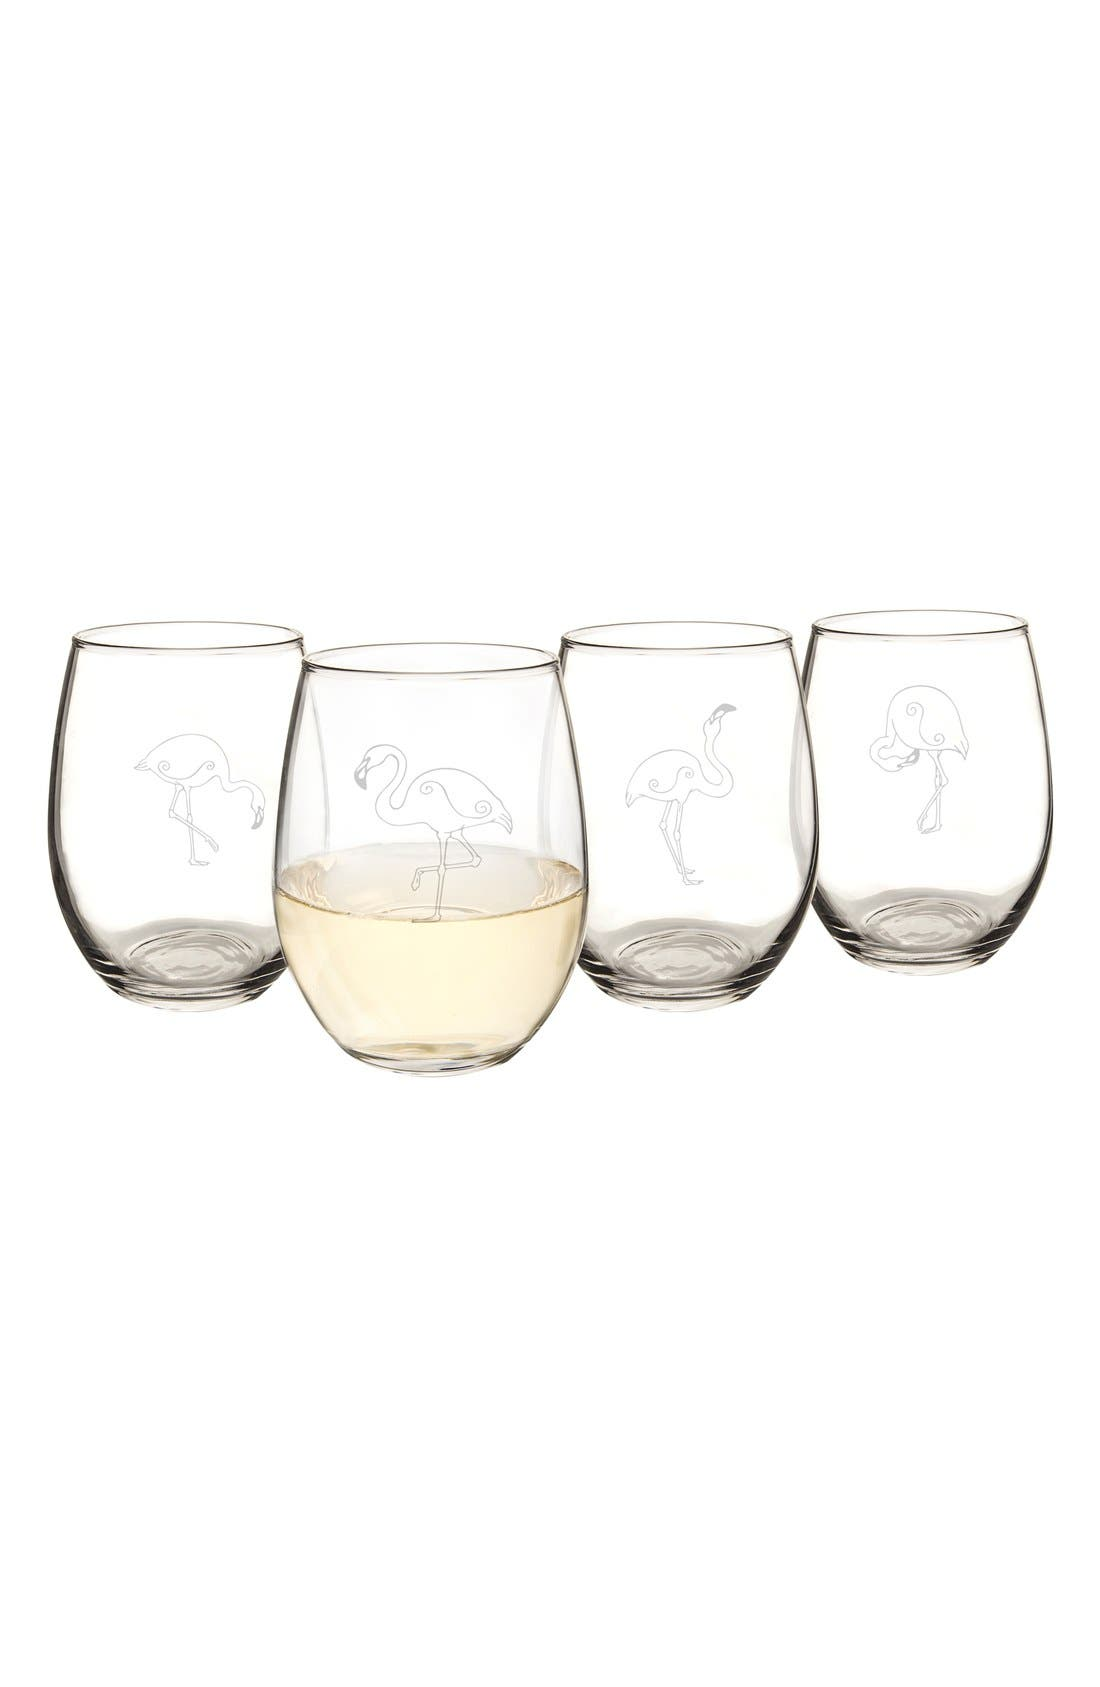 Theme Etched Set of 4 Stemless Wine Glasses,                             Alternate thumbnail 3, color,                             FLAMINGO